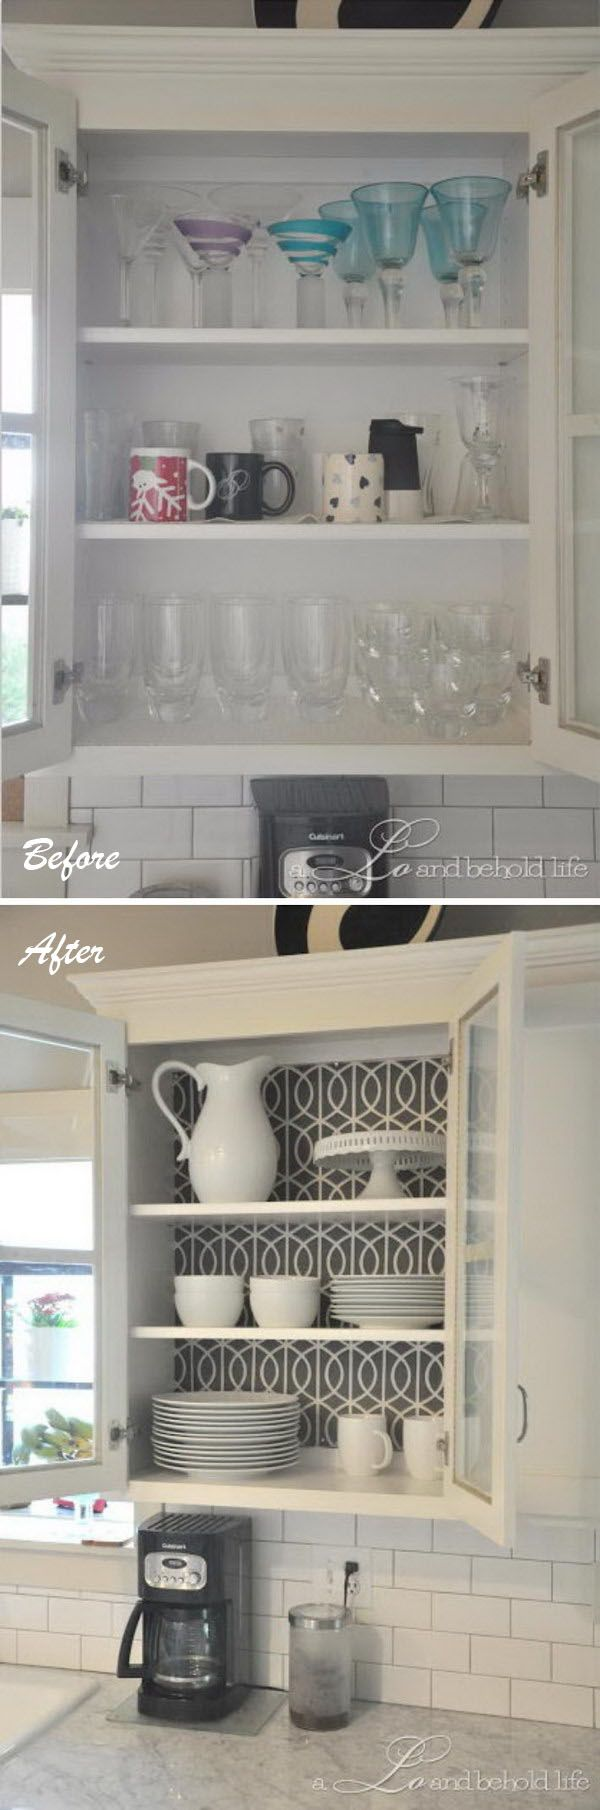 17 best ideas about cheap kitchen updates on pinterest for Cheap home makeovers